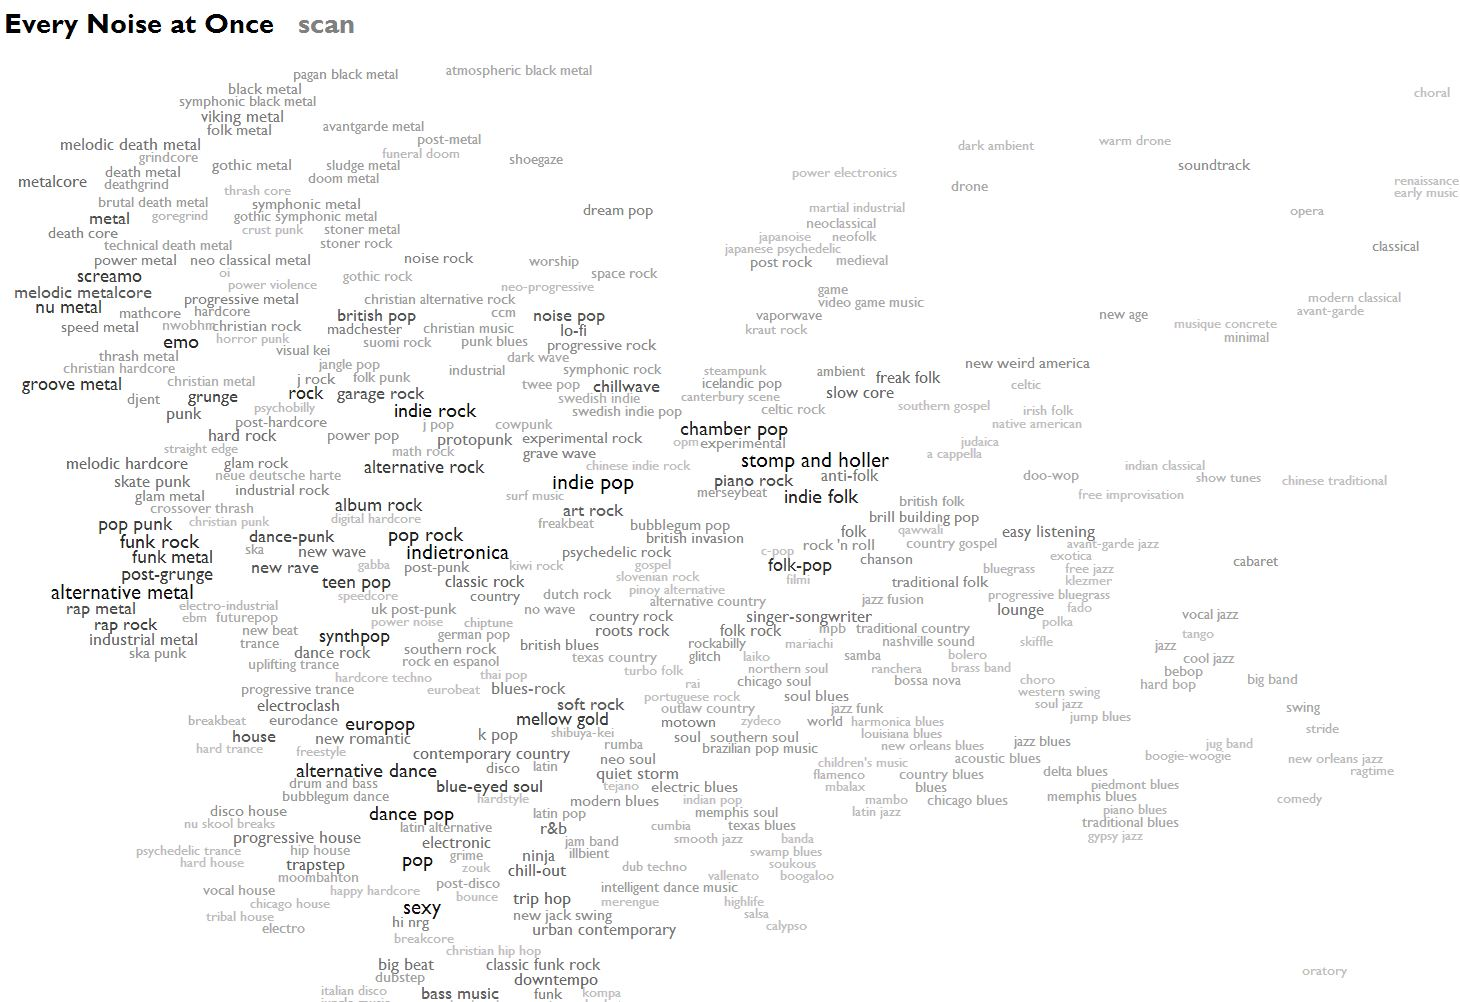 Listen To Almost Every Music Genre Via This Interactive Map